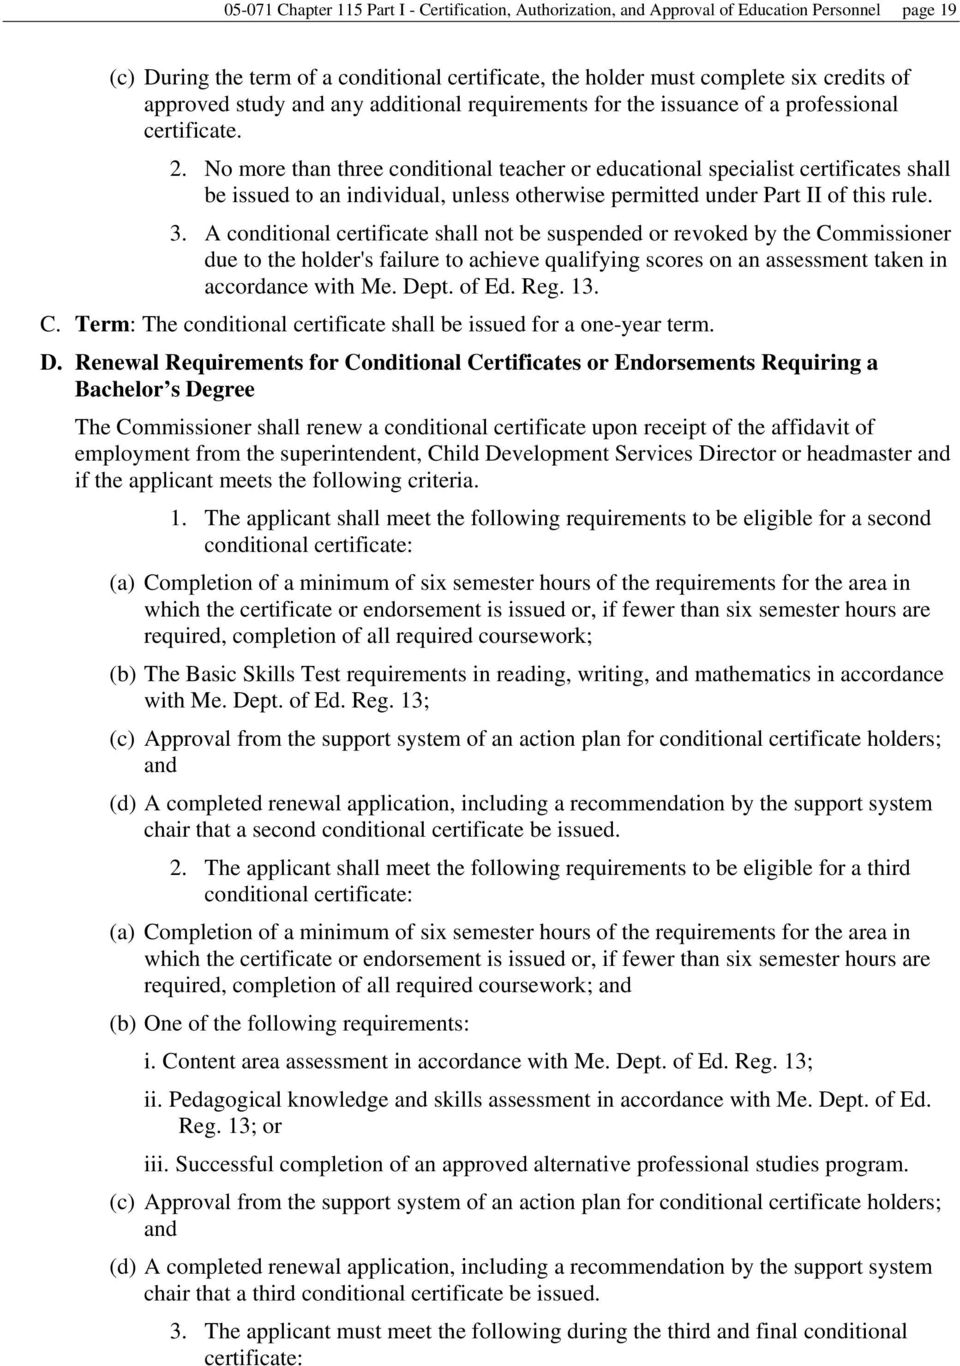 No more than three conditional teacher or educational specialist certificates shall be issued to an individual, unless otherwise permitted under Part II of this rule. 3.